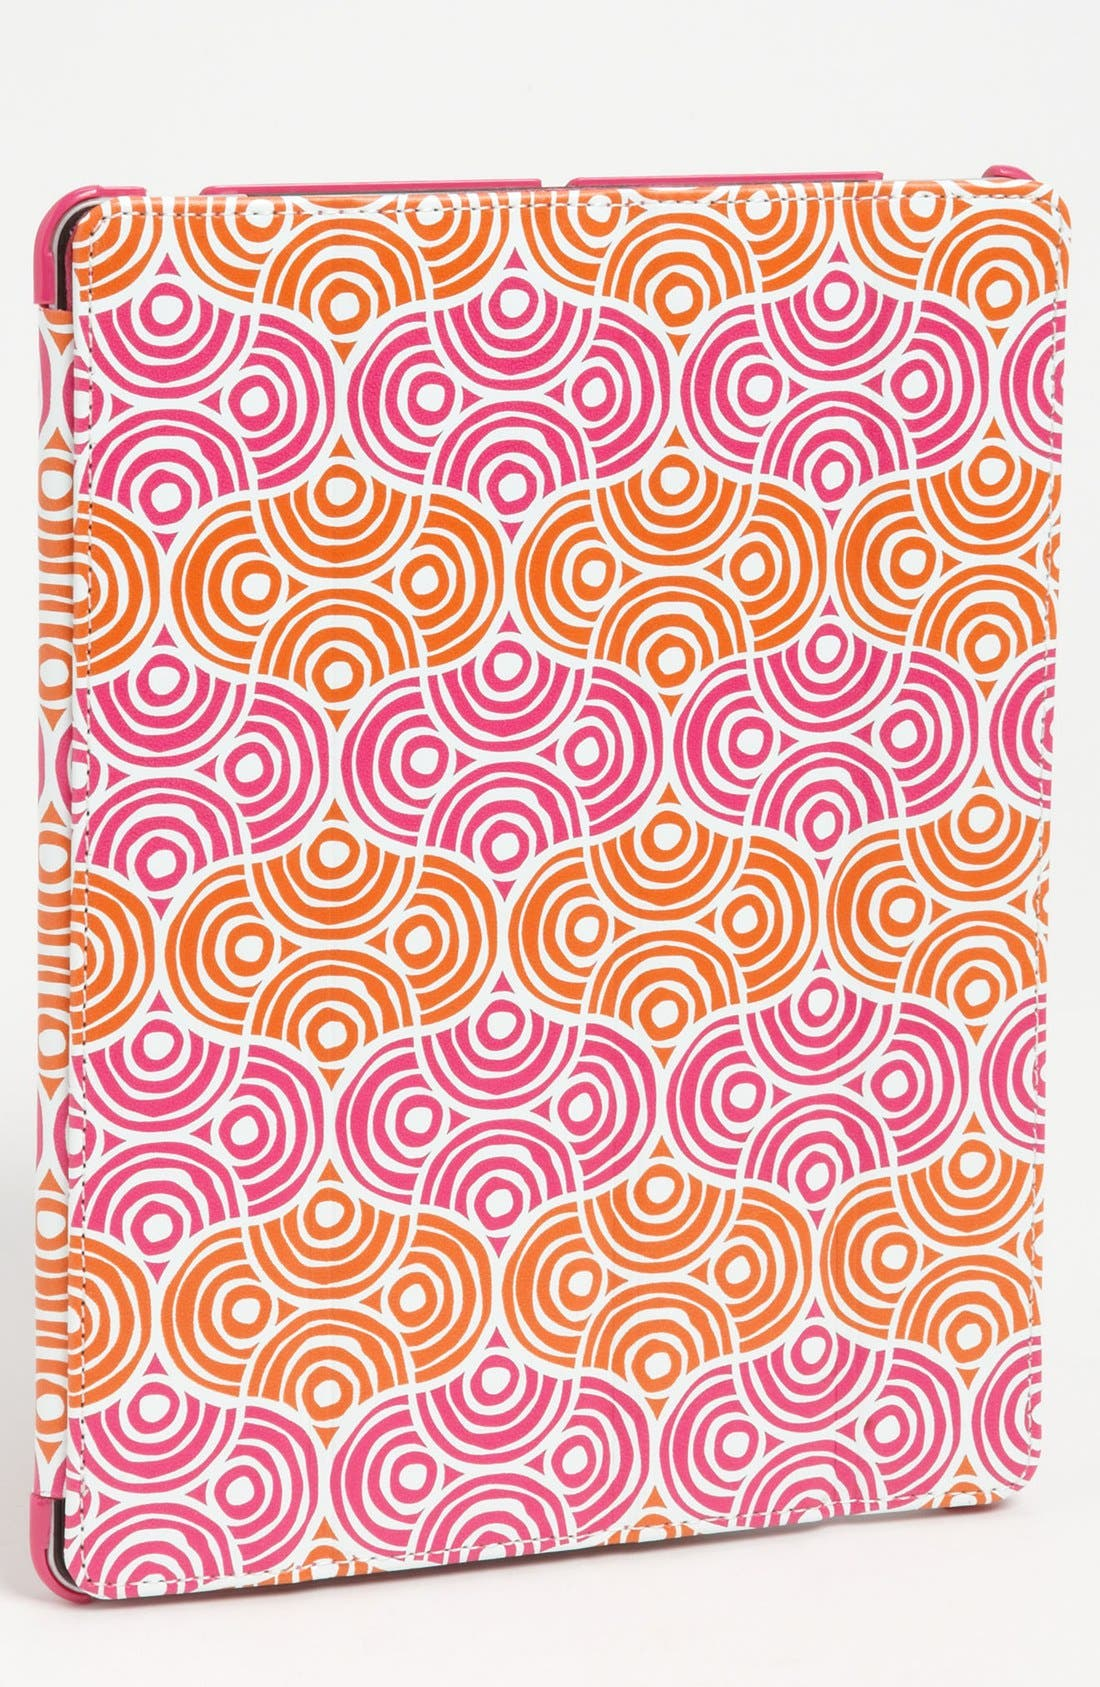 Main Image - Jonathan Adler 'Circle Ornaments' iPad 2 & 3 Case